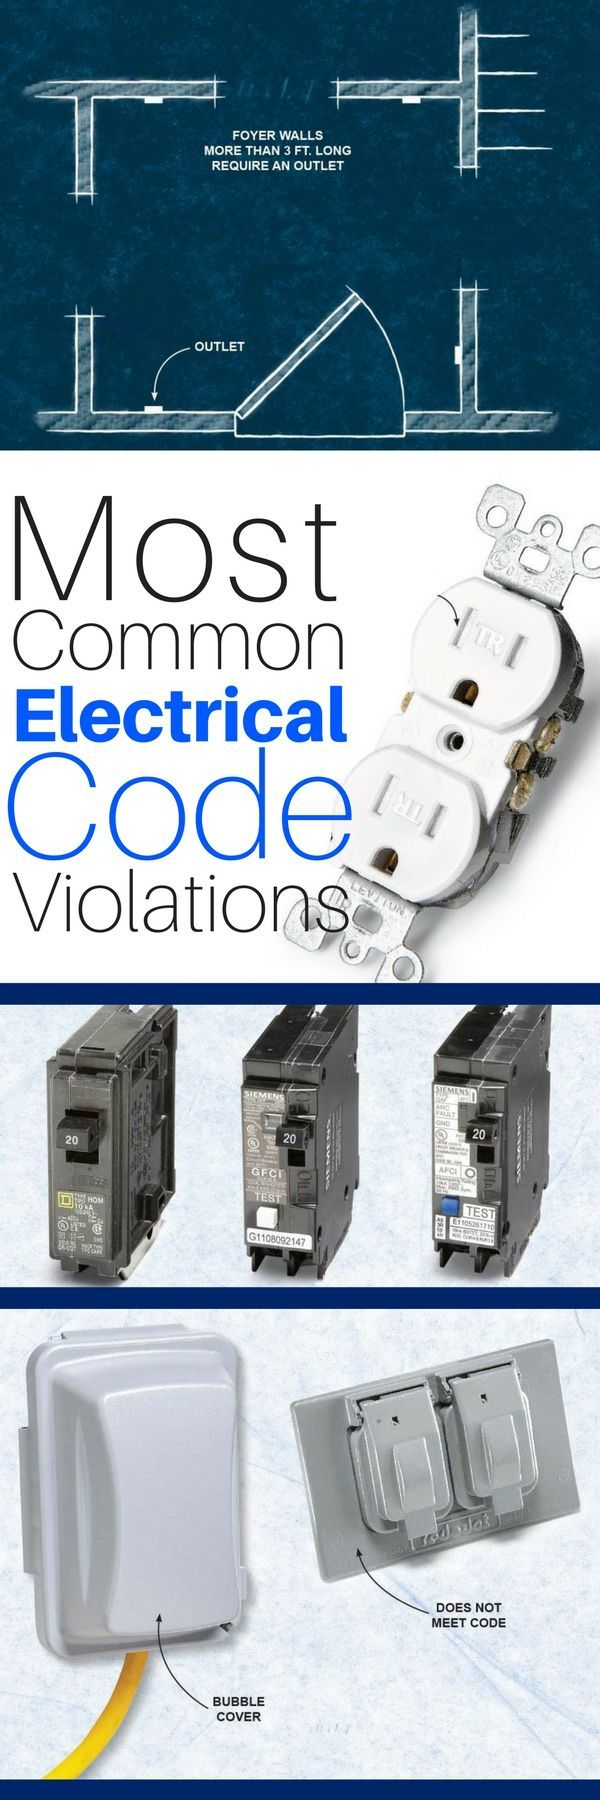 72 Best Electrical Images On Pinterest Tools Alternative Energy Always Plug Power Into A Rcb Circuit Breaker As Safety The 8 Most Common National Electric Code Violations Diyers Make